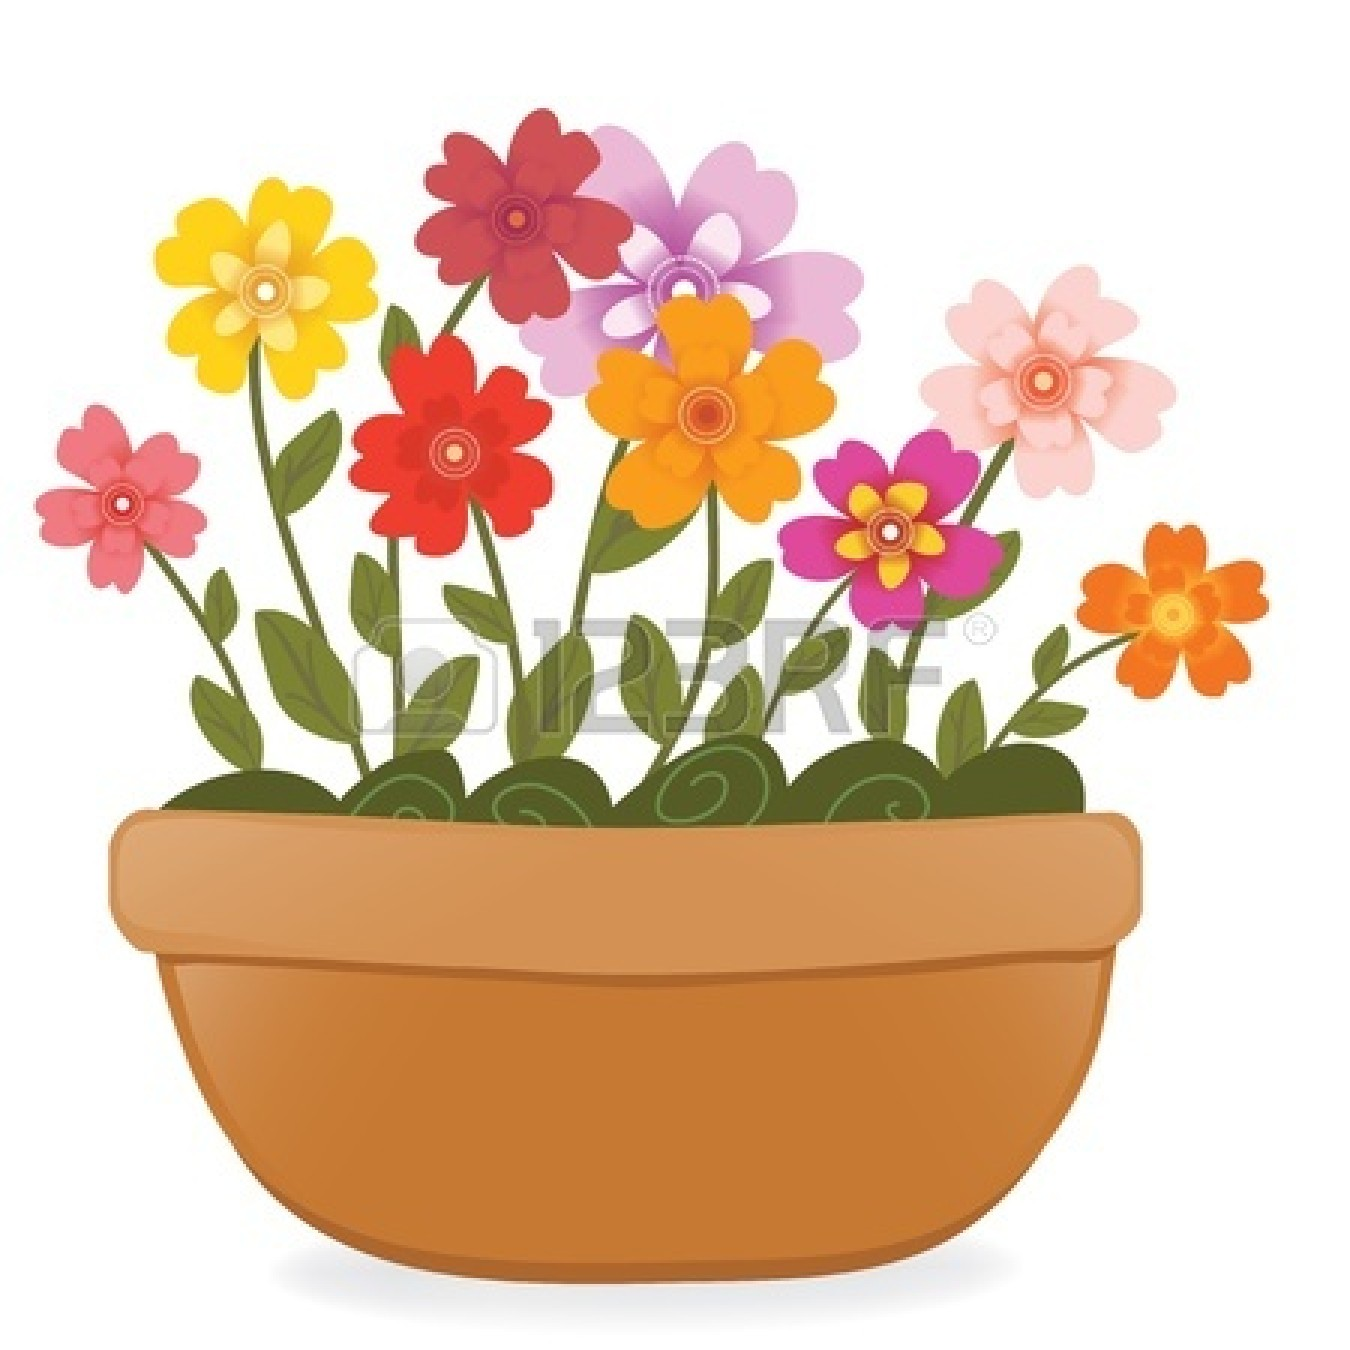 1350x1350 Flower Pot Clipart